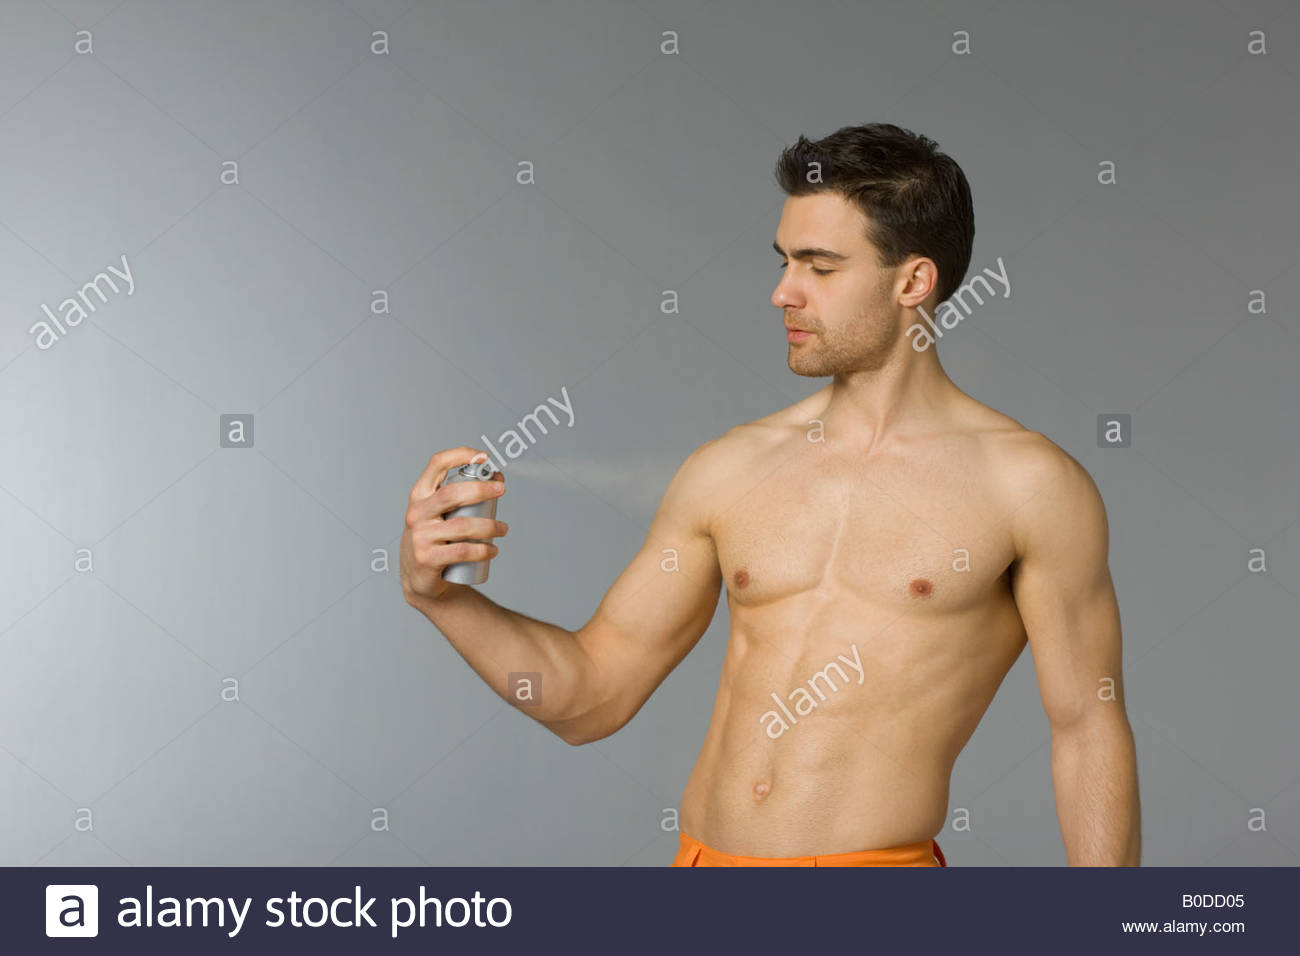 Young man spraying body deodorant - Stock Image